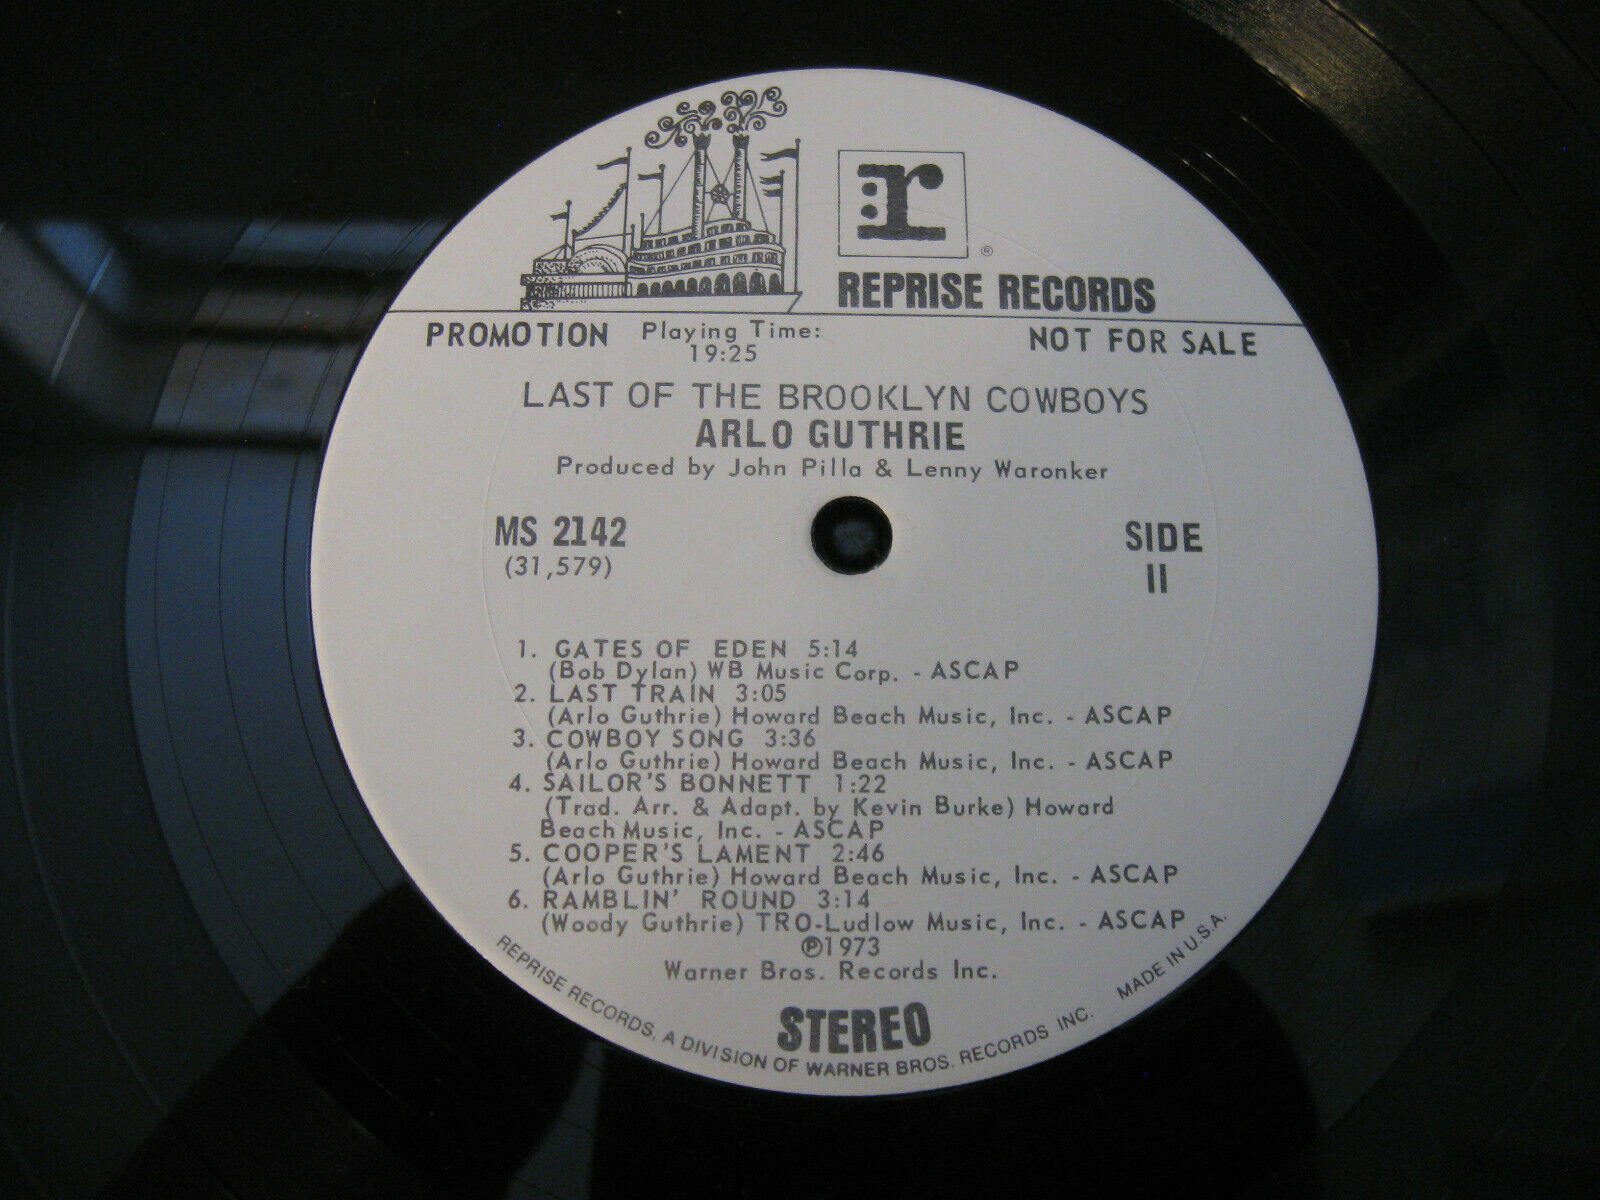 Arlo Guthrie Last Of The Brooklyn Cowboys Reprise MS 2142 Stereo Promo Copy